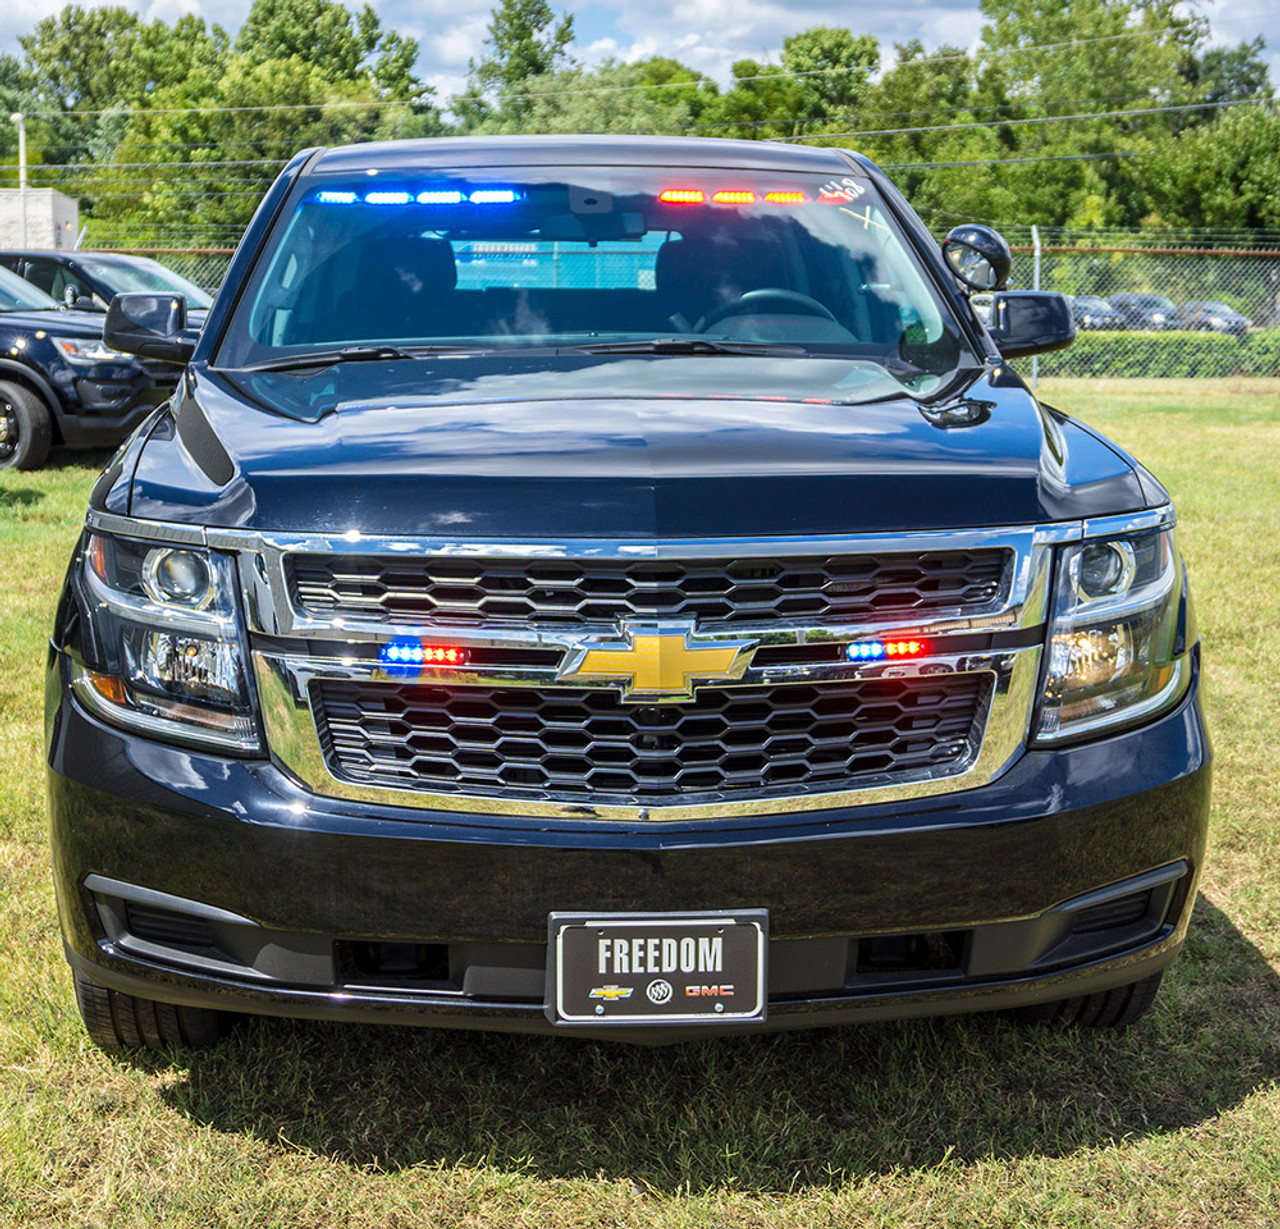 New 2020 Black Chevy Tahoe Police Package V8 2WD ready to be built as a Slick-Top Admin Package, choose any color LED Lights, + Delivery